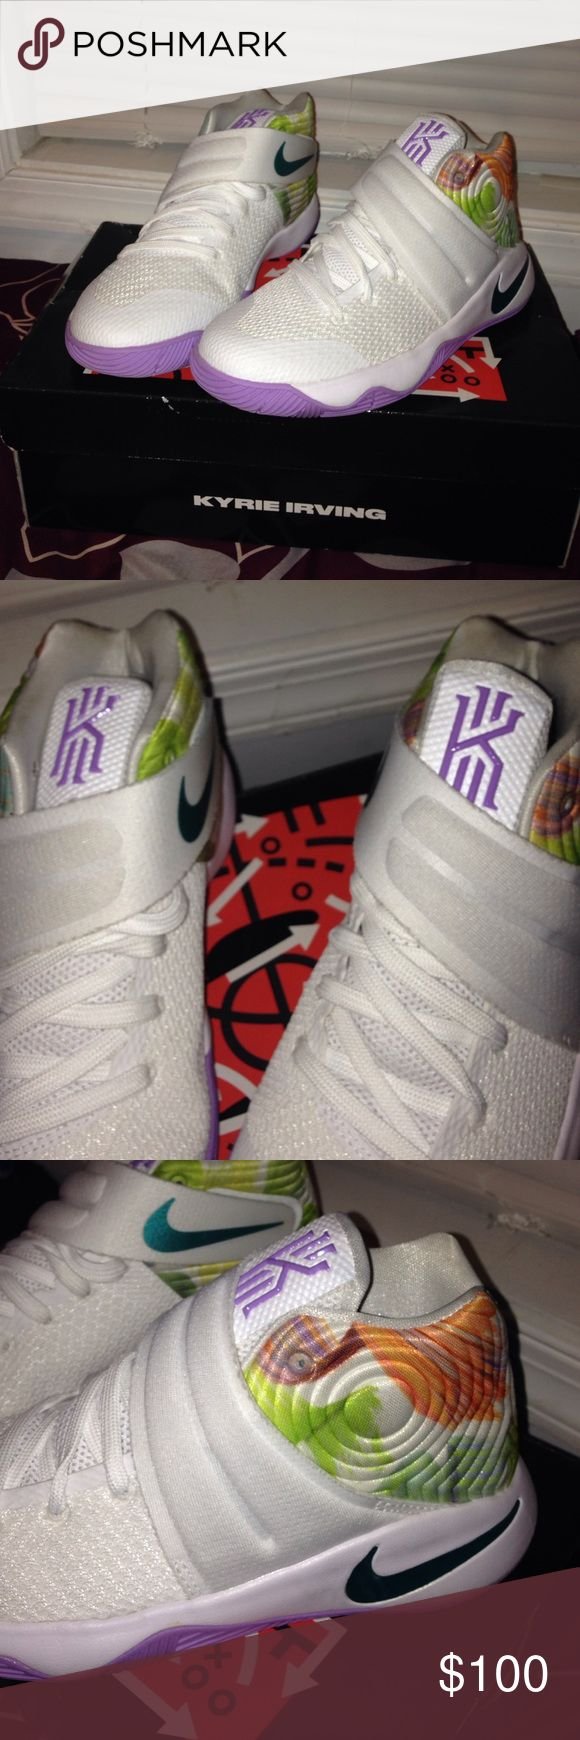 Kyrie sneakers These are a very different multi color sneaker in perfect condition and look brand new worn once.  Open for offers Kyrie 2 (GS) Shoes Sneakers